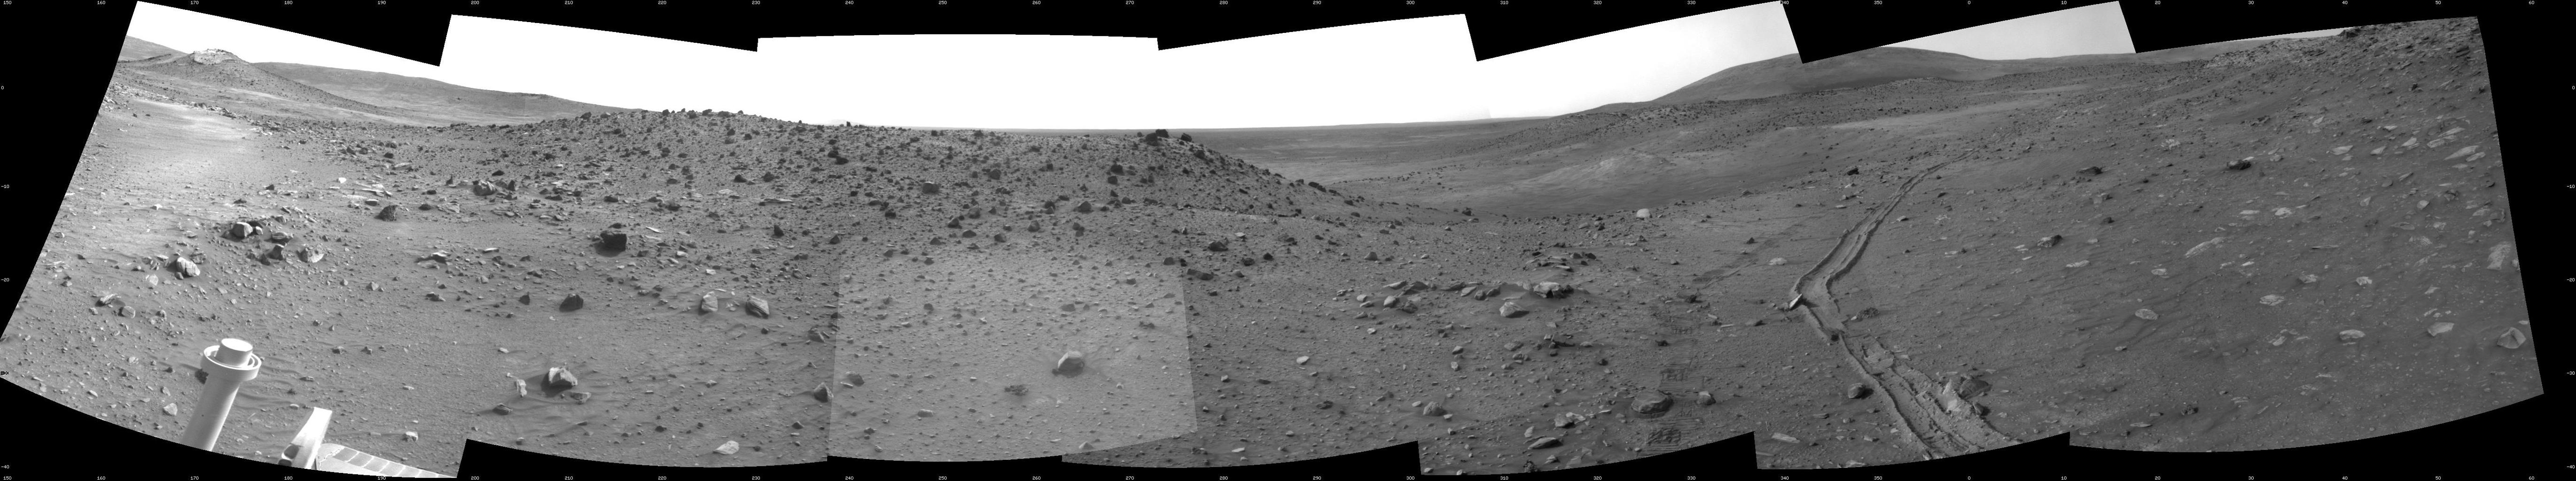 This scene combines seven frames taken by the navigation camera on NASA's Mars Exploration Rover Spirit during the 1,891st Martian day, or sol, of Spirit's mission on Mars (April 28, 2009).